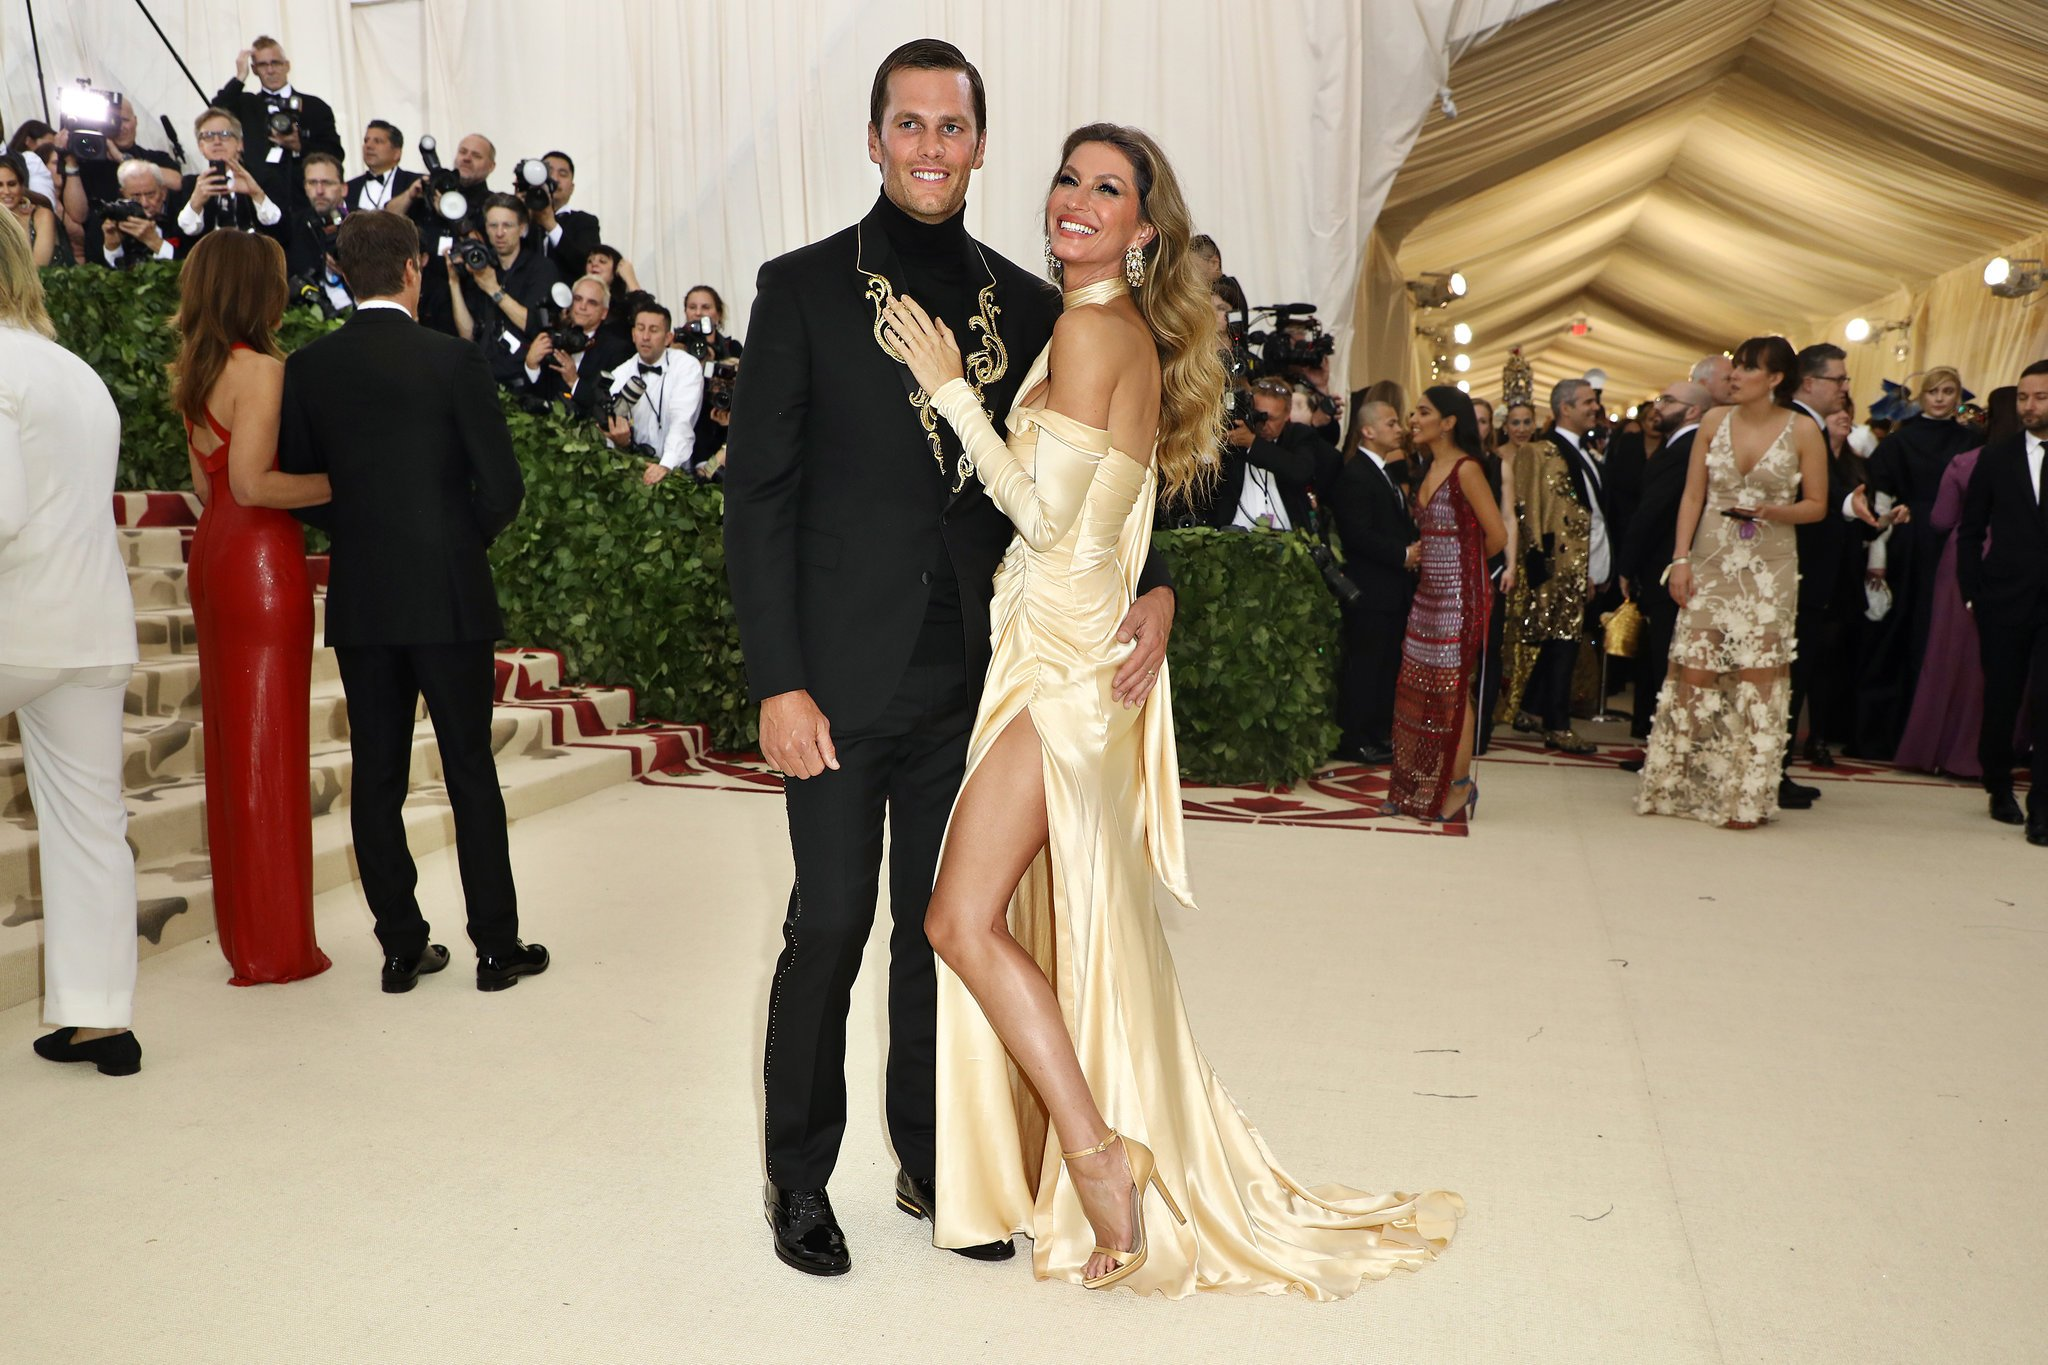 Gisele | Image via The New York Times